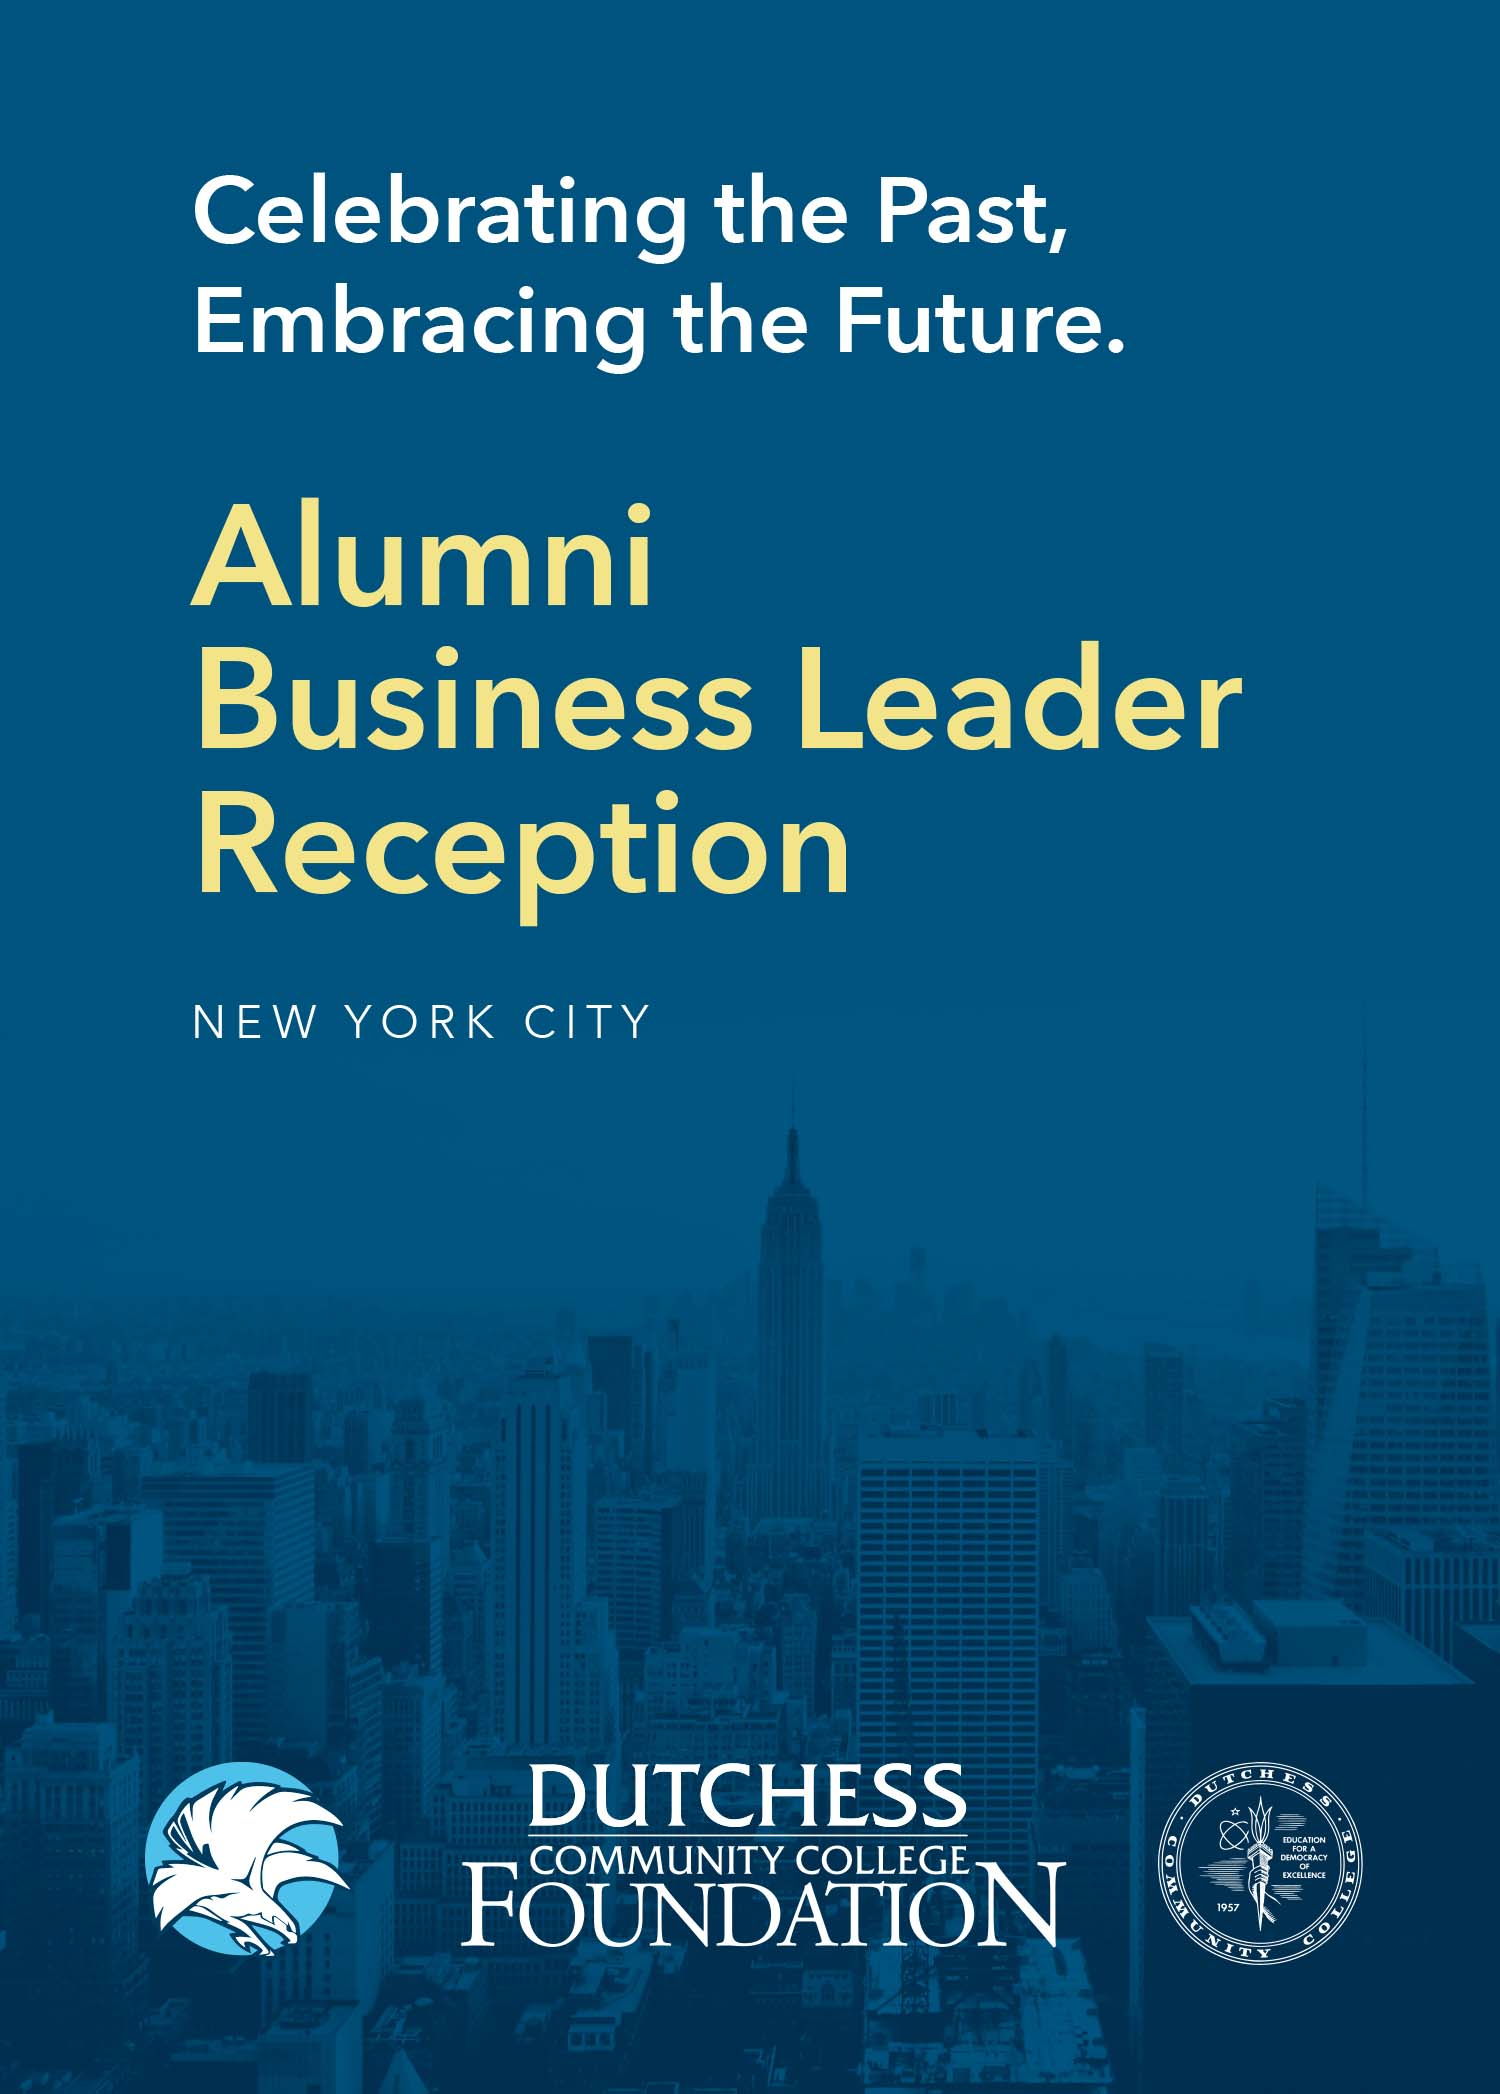 Alumni Business Leader Reception invite